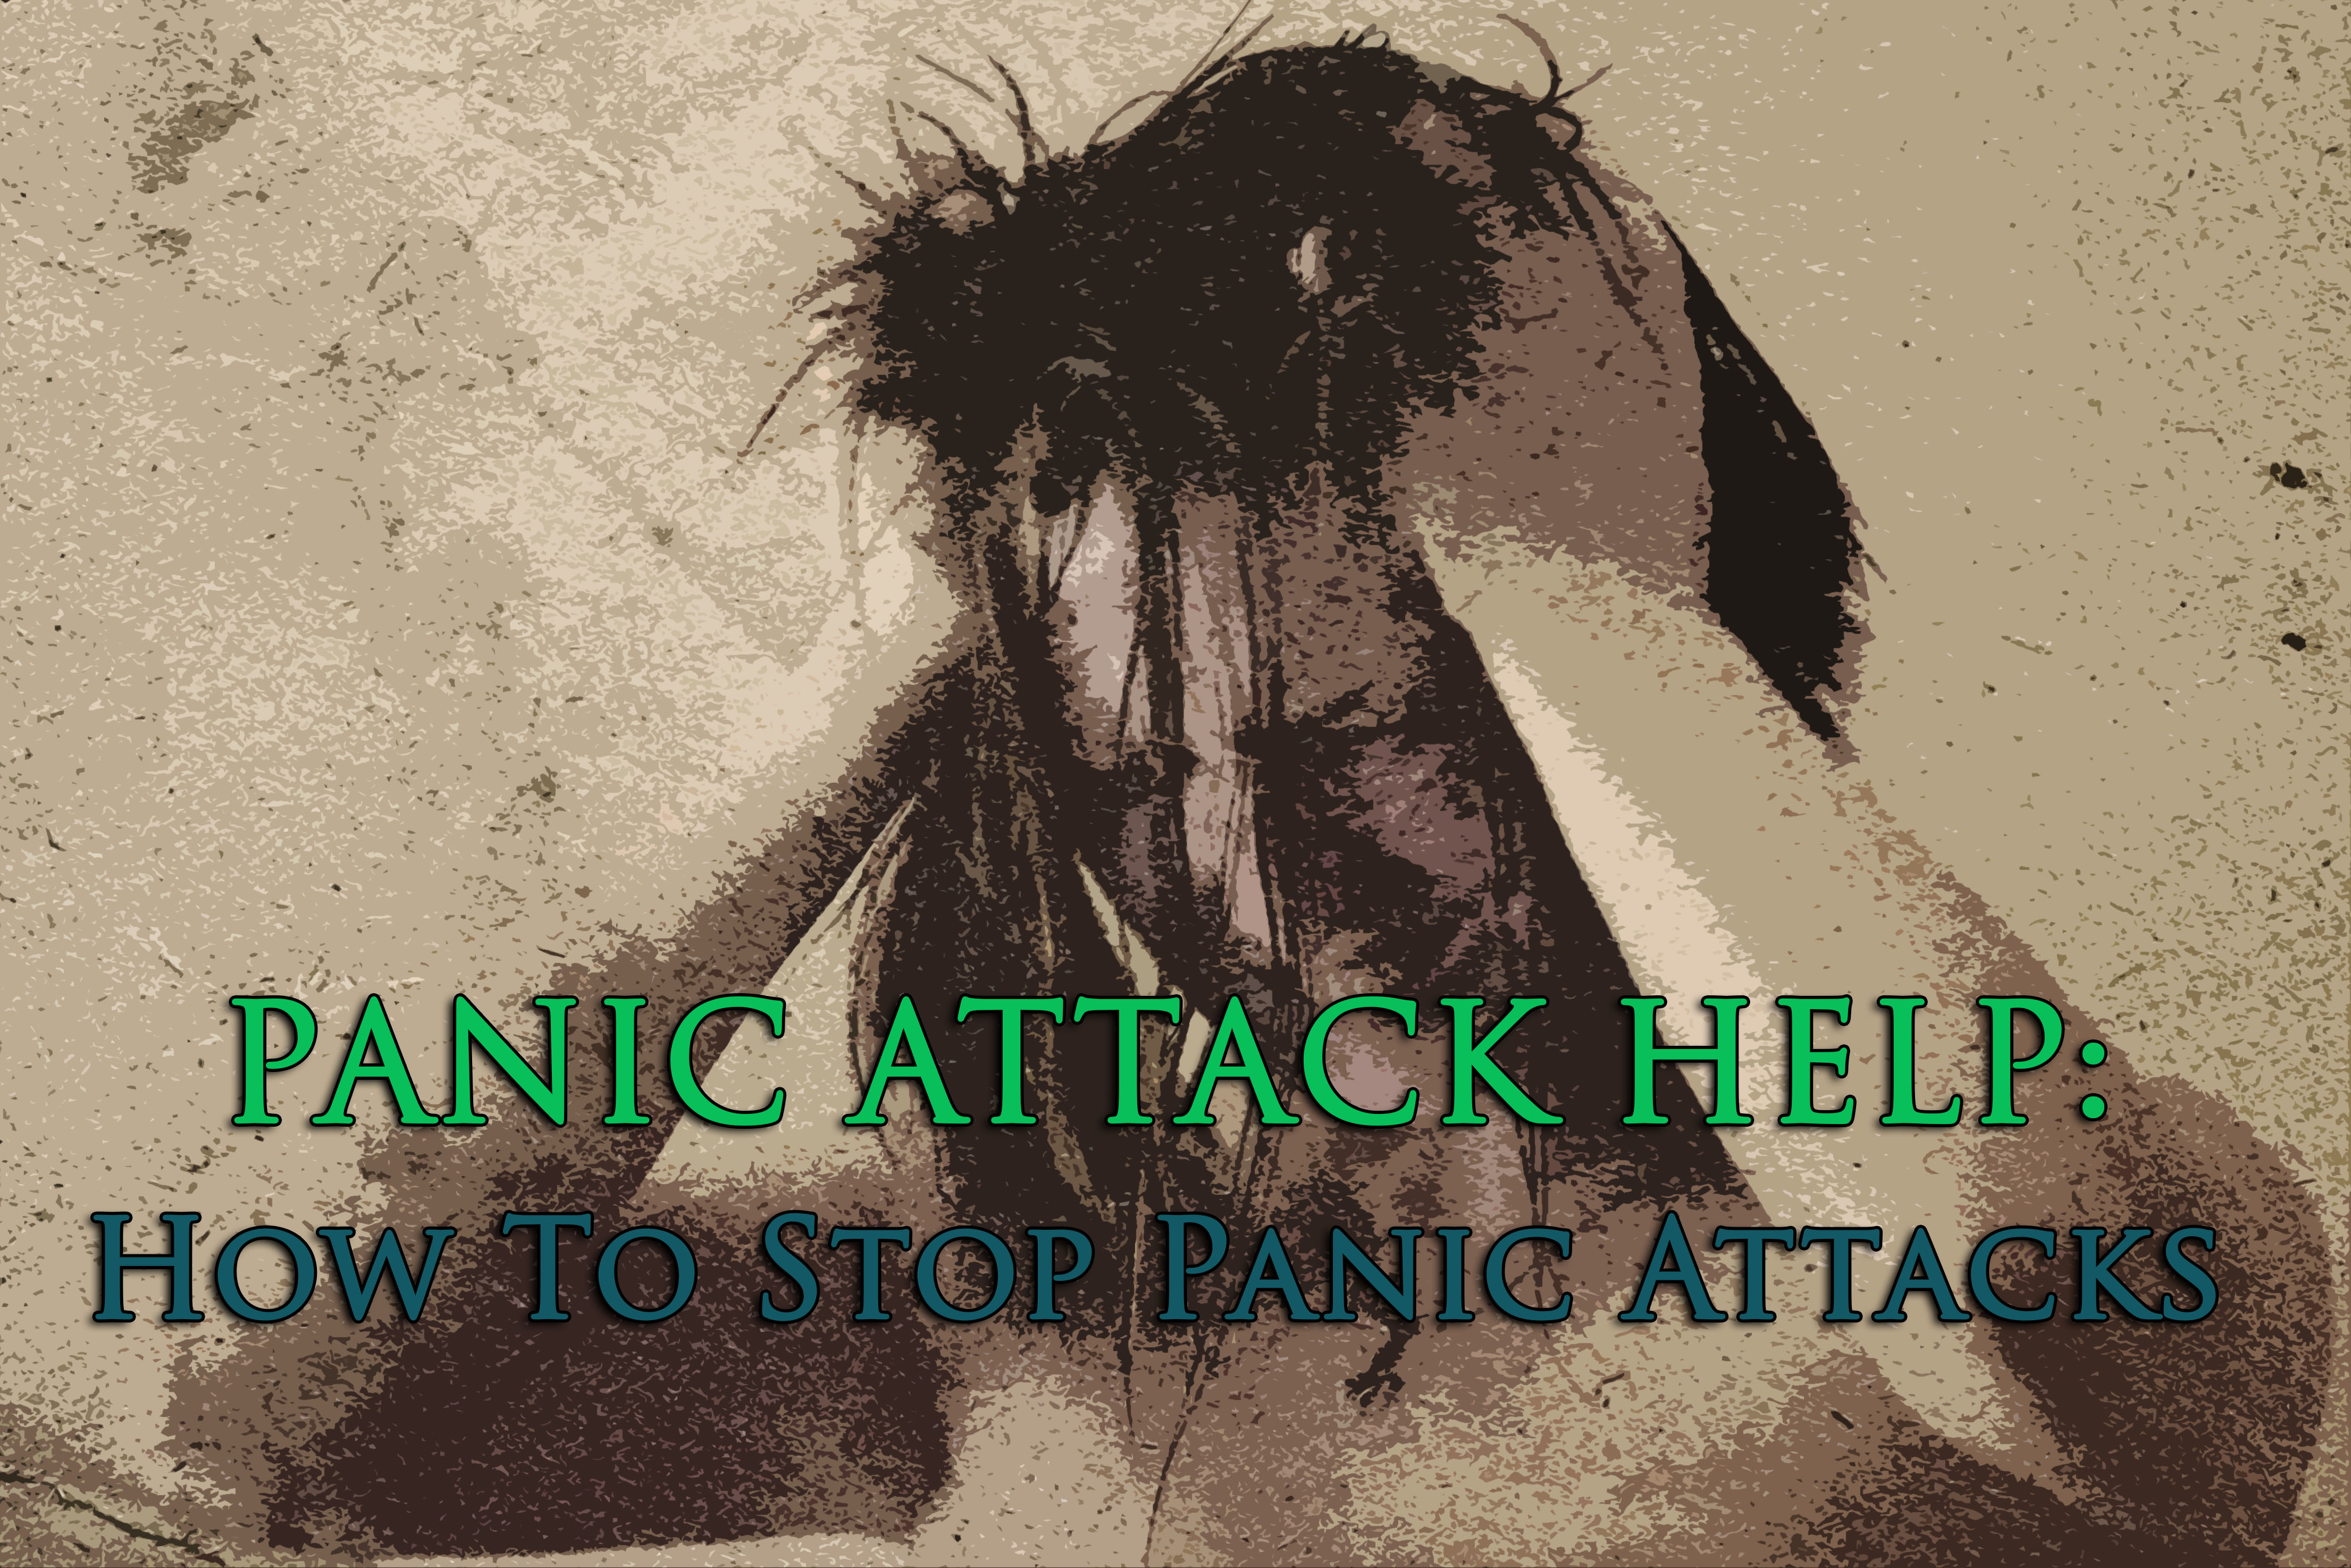 panic attack help featured image